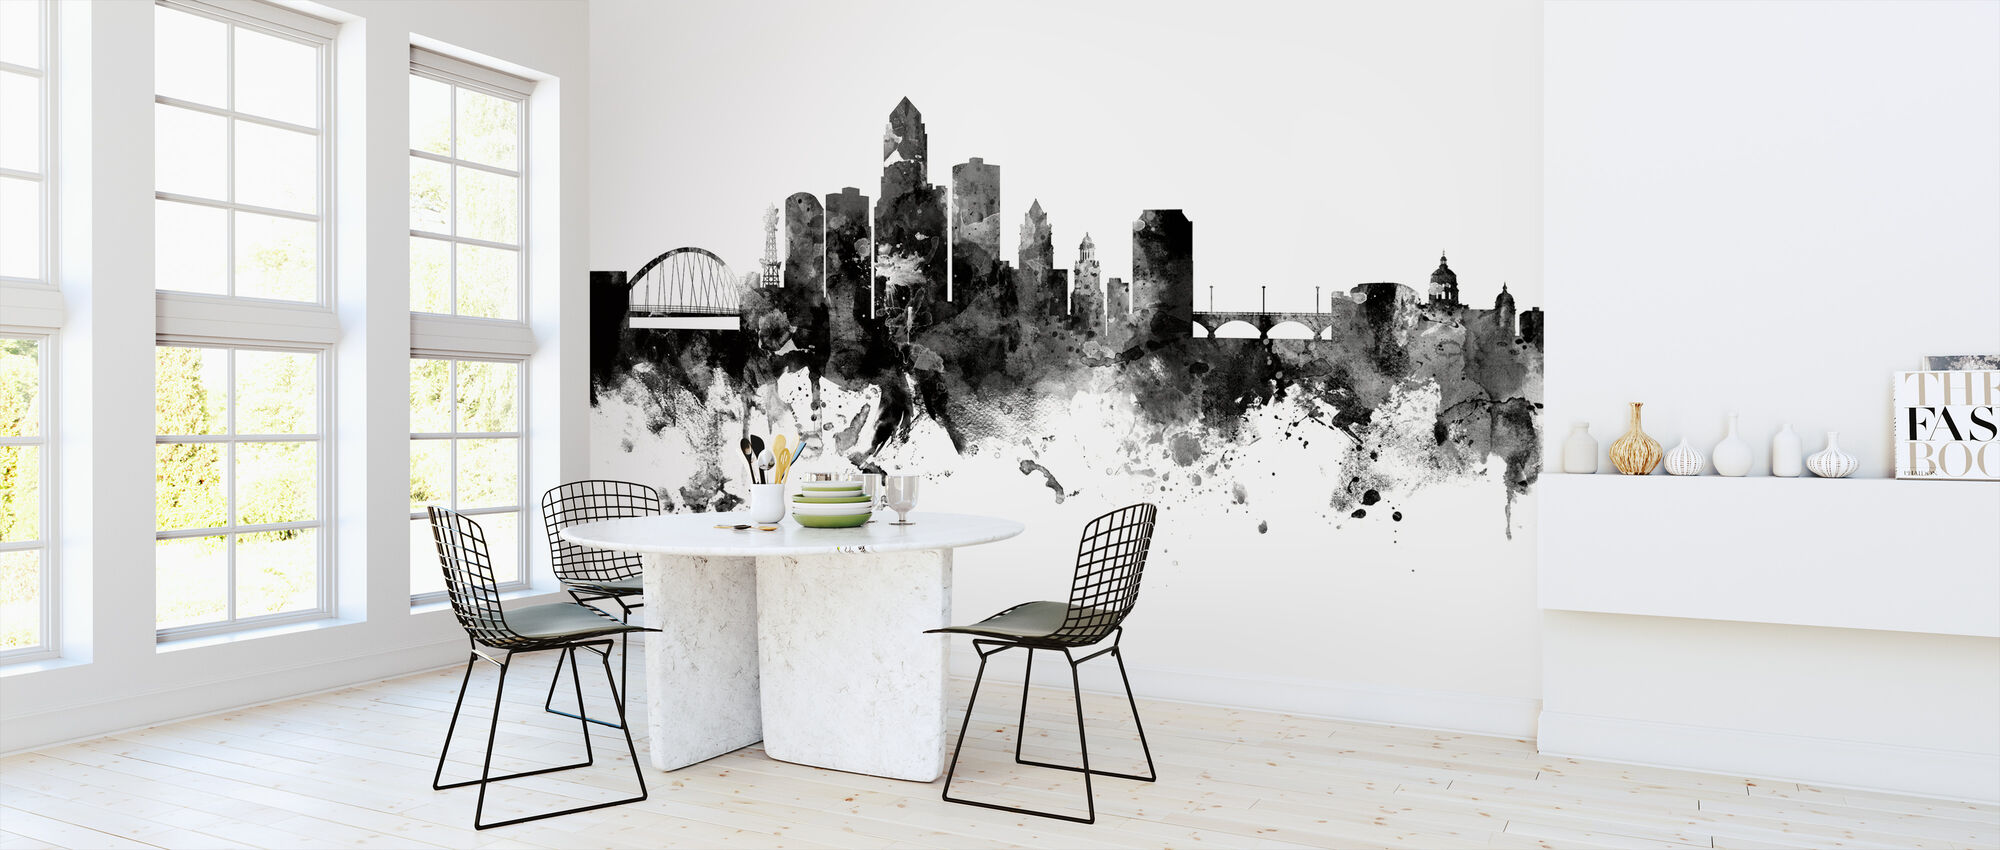 Des Moines Iowa Skyline, black and white - Wallpaper - Kitchen